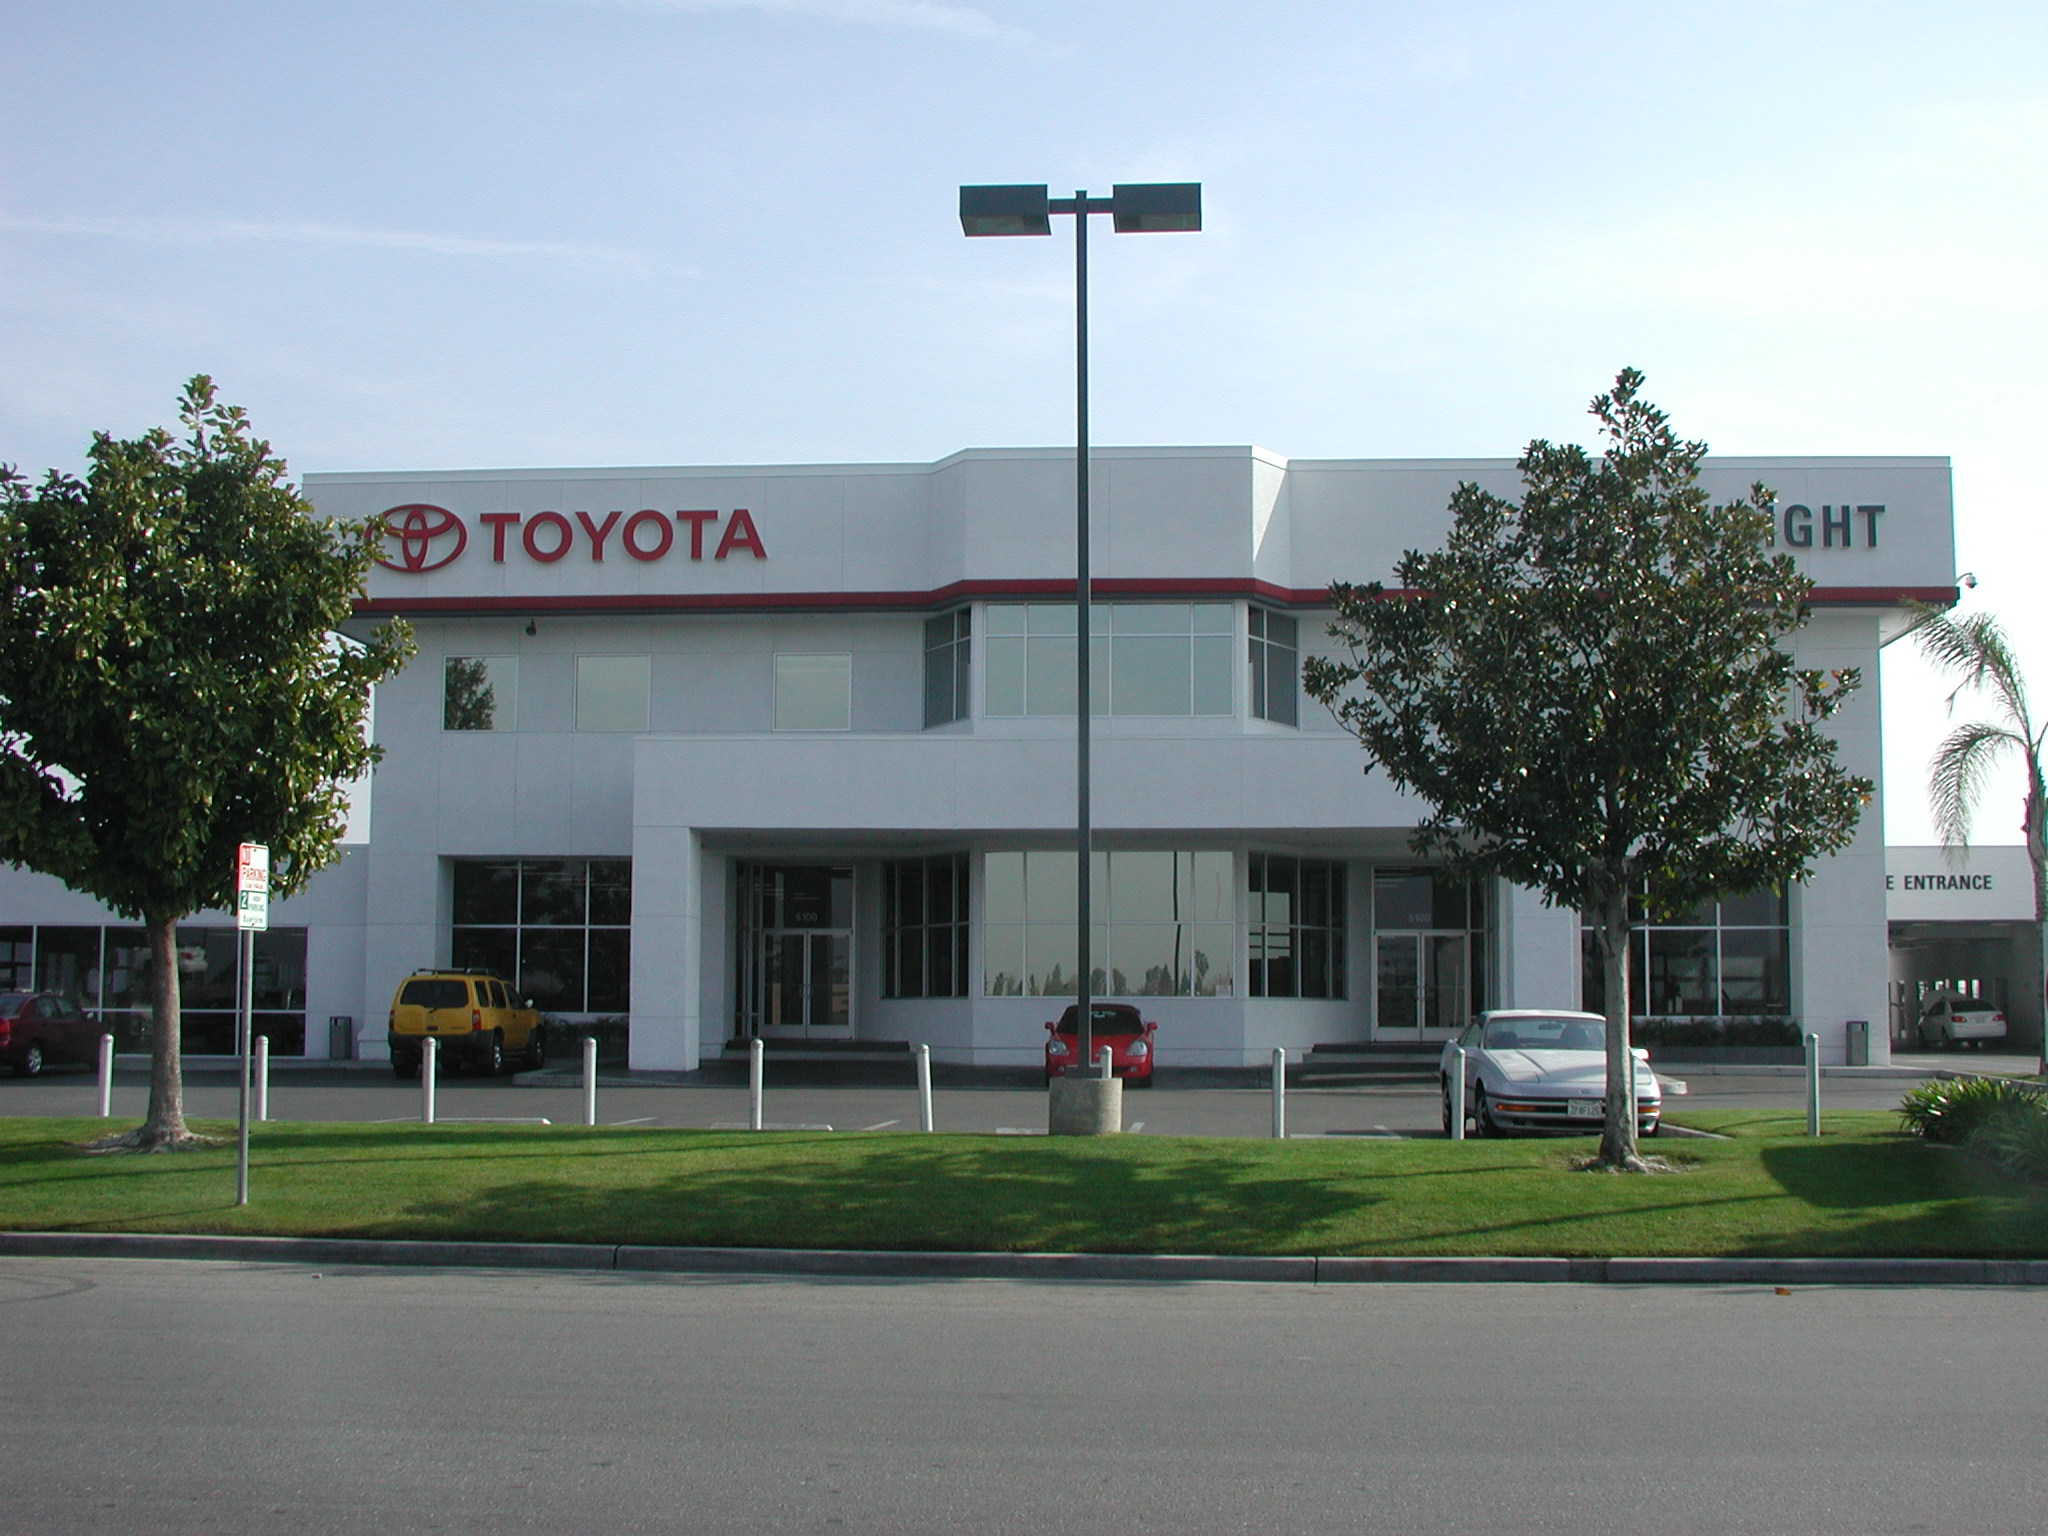 Bill Wright Toyota 5100 Gasoline Alley Dr Bakersfield Ca 93313 Yp